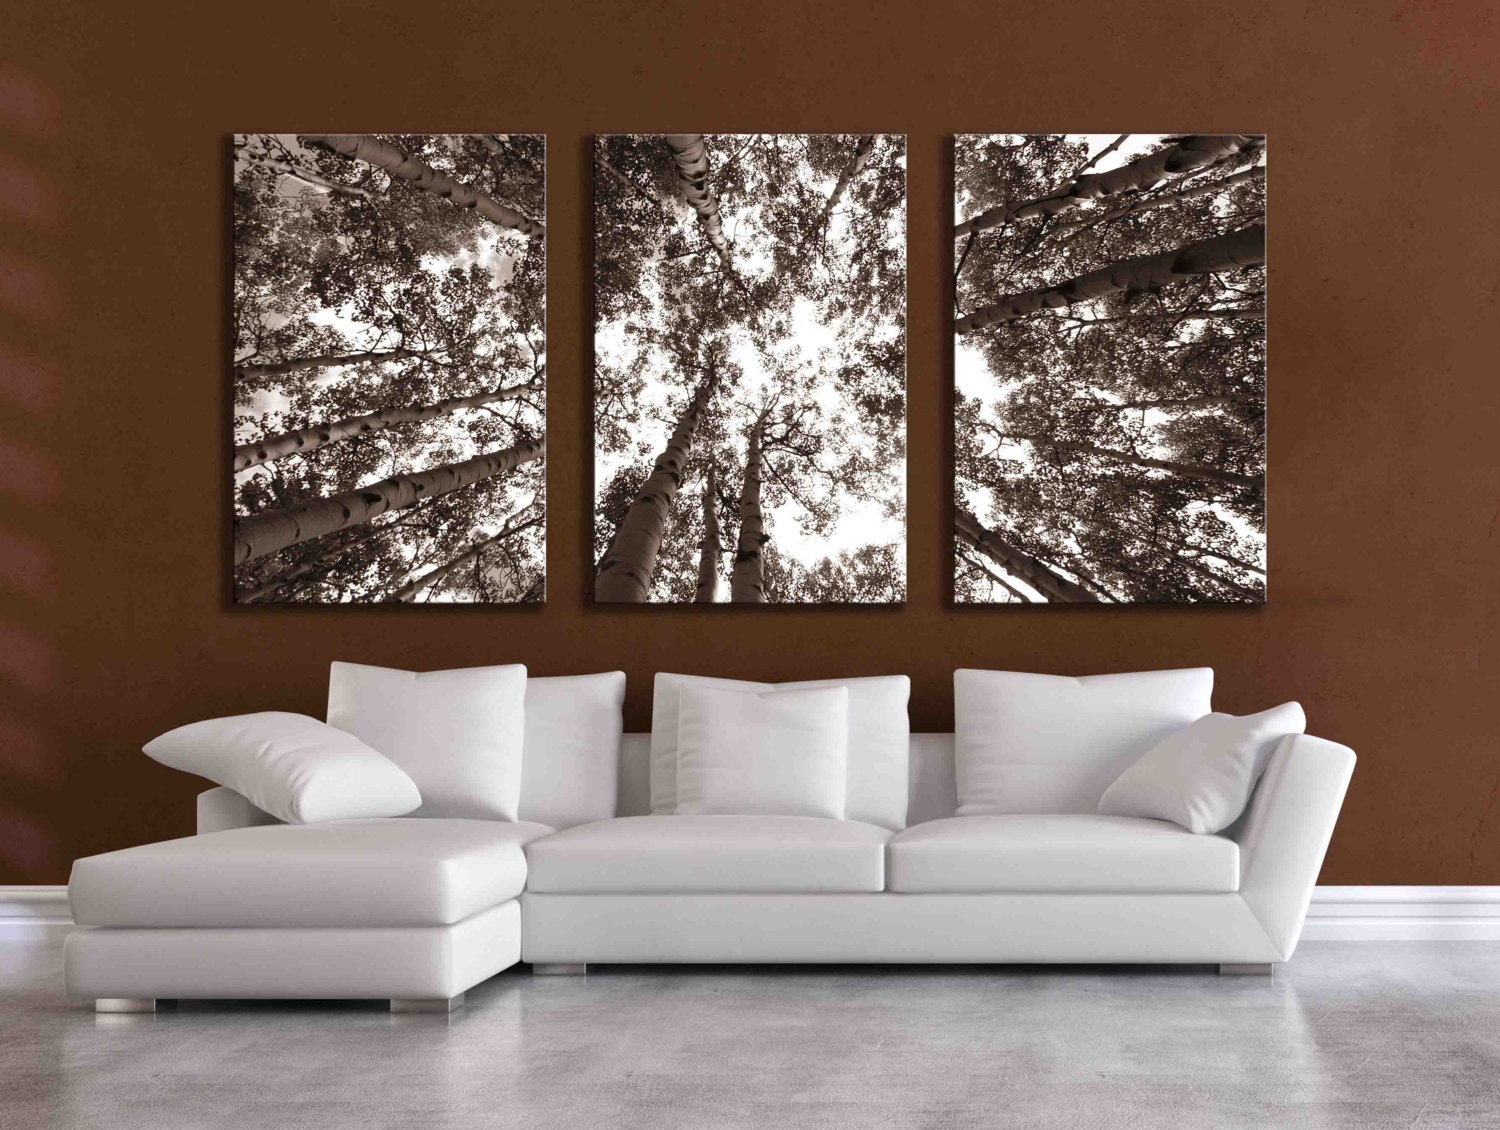 Large M Wall Decor : Three large multi panel wall art aspen inch or